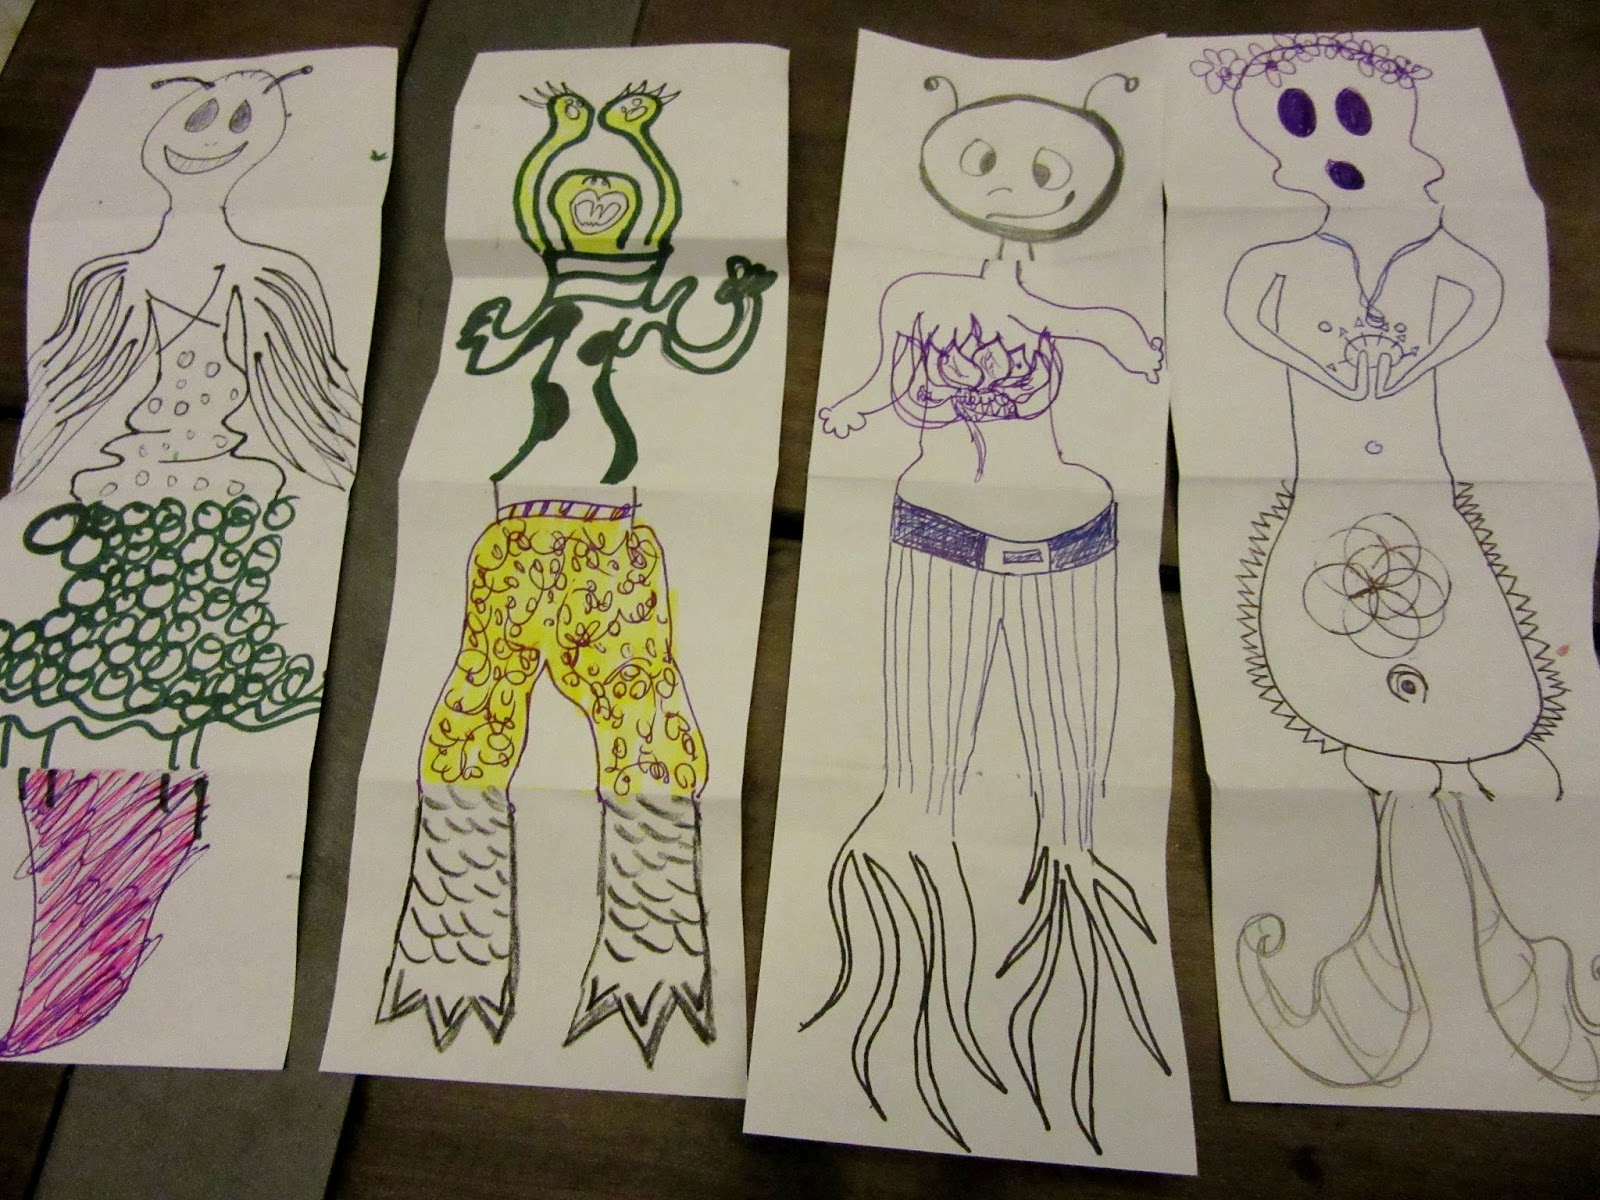 Found these examples on  http://bld-in-mt.blogspot.com/2015/07/drawing-games-exquisite-corpse.html